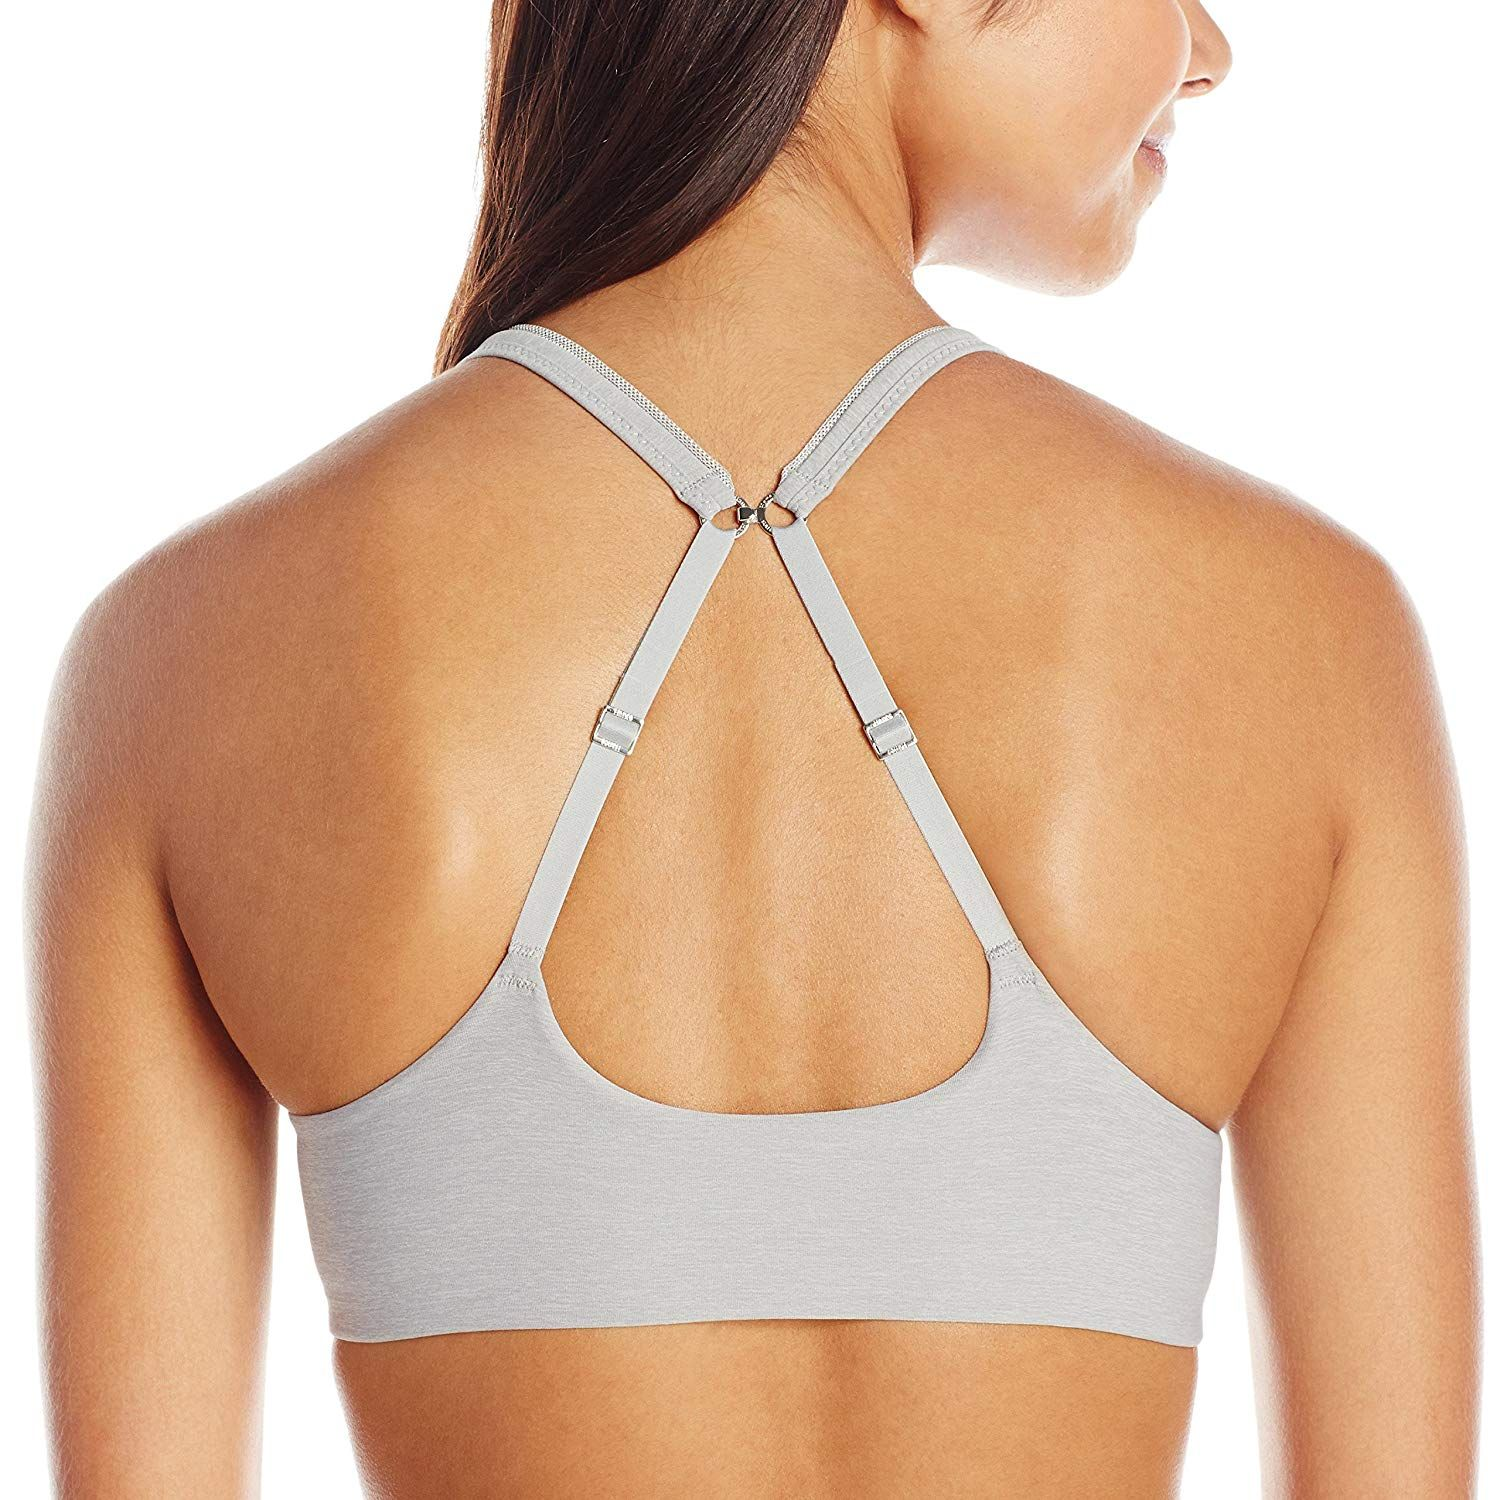 e018ebbf2e Hanes Ultimate ComfortBlend T-Shirt Front-Close Bra (HU01) at Amazon  Women s Clothing store